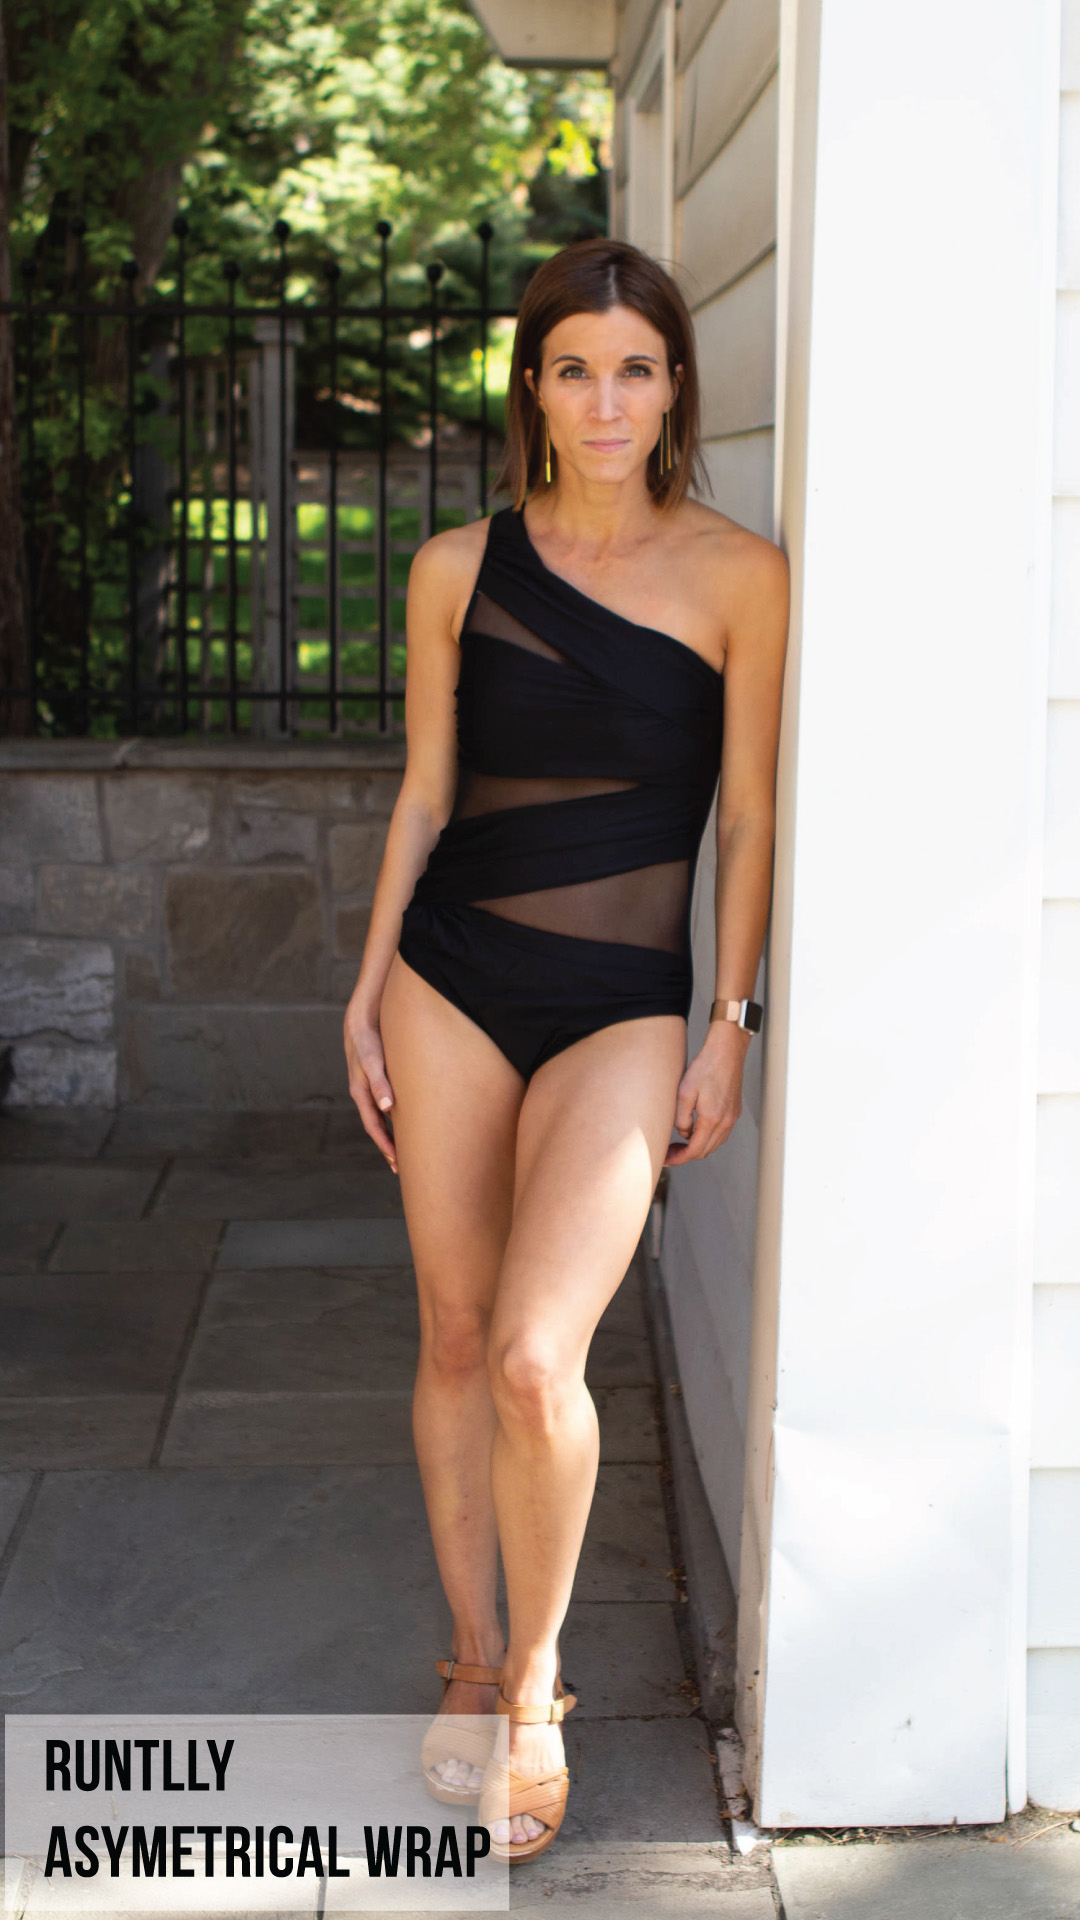 Runtlly Asymetrical Wrap One-Piece Swimsuit